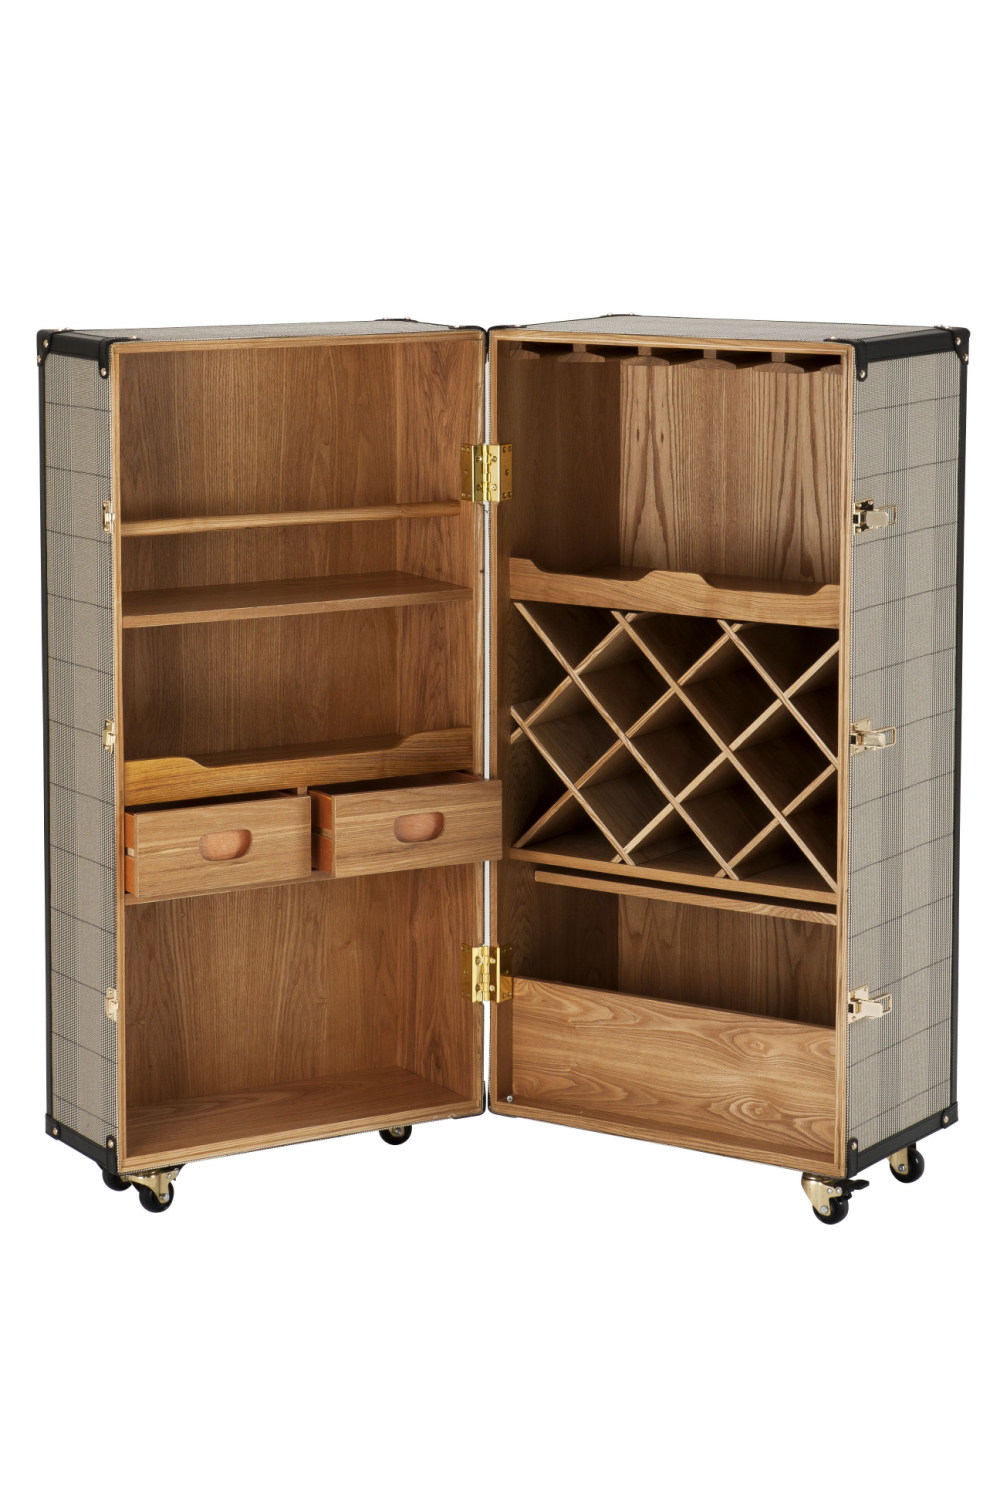 Wooden Wine Cabinet | Eichholtz Martini Bianco | Woodfurniture.com